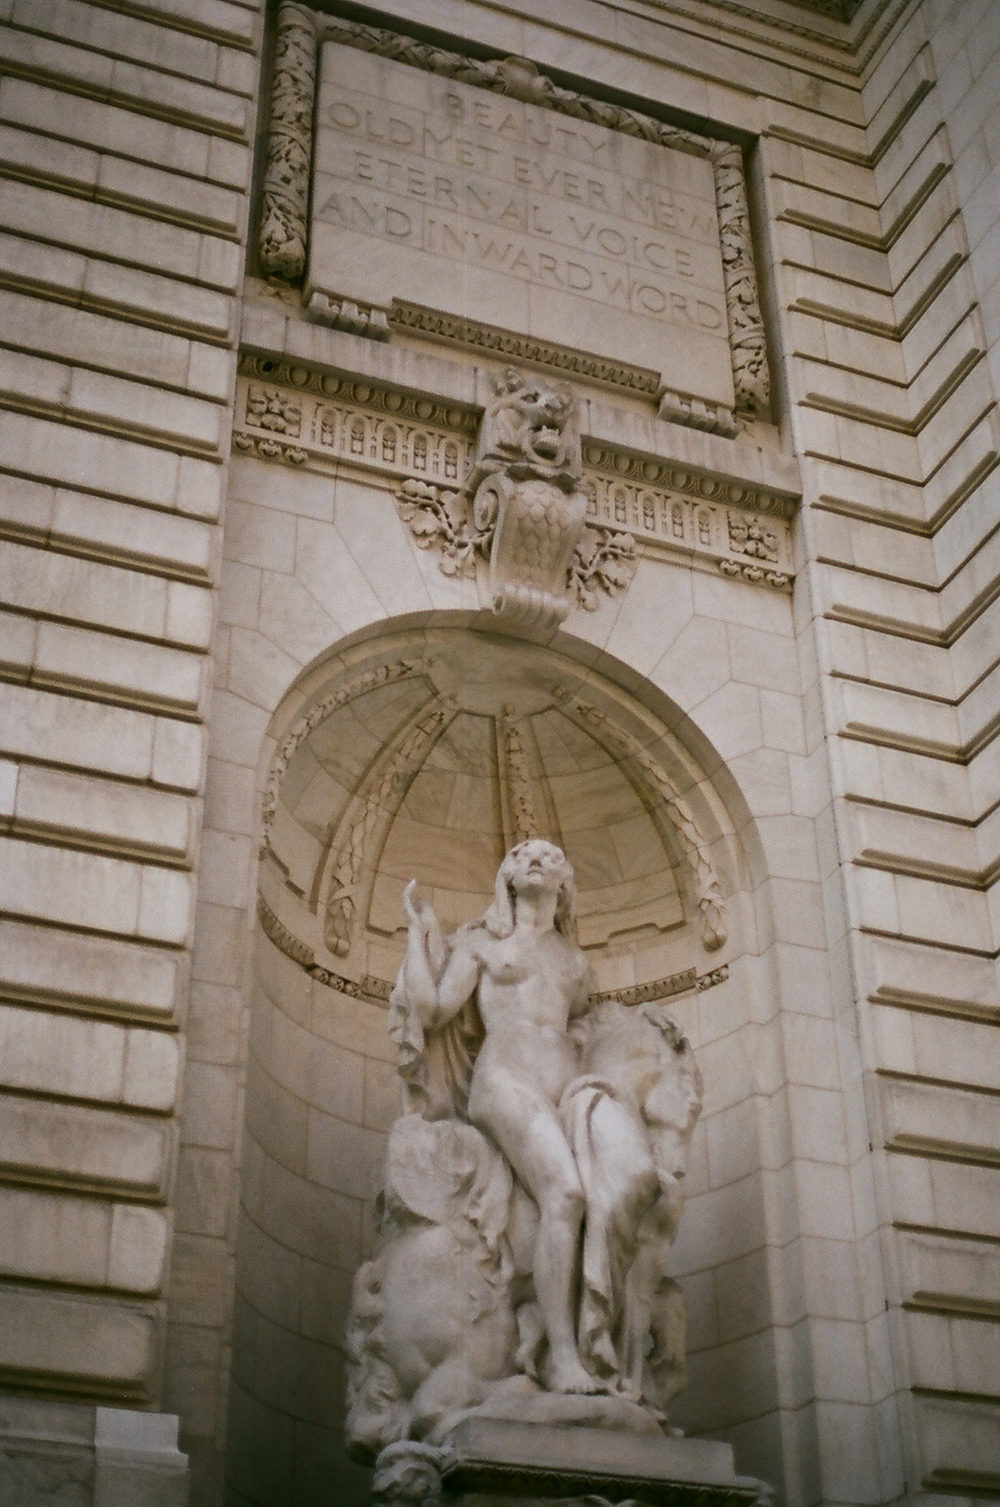 nyc public library statue